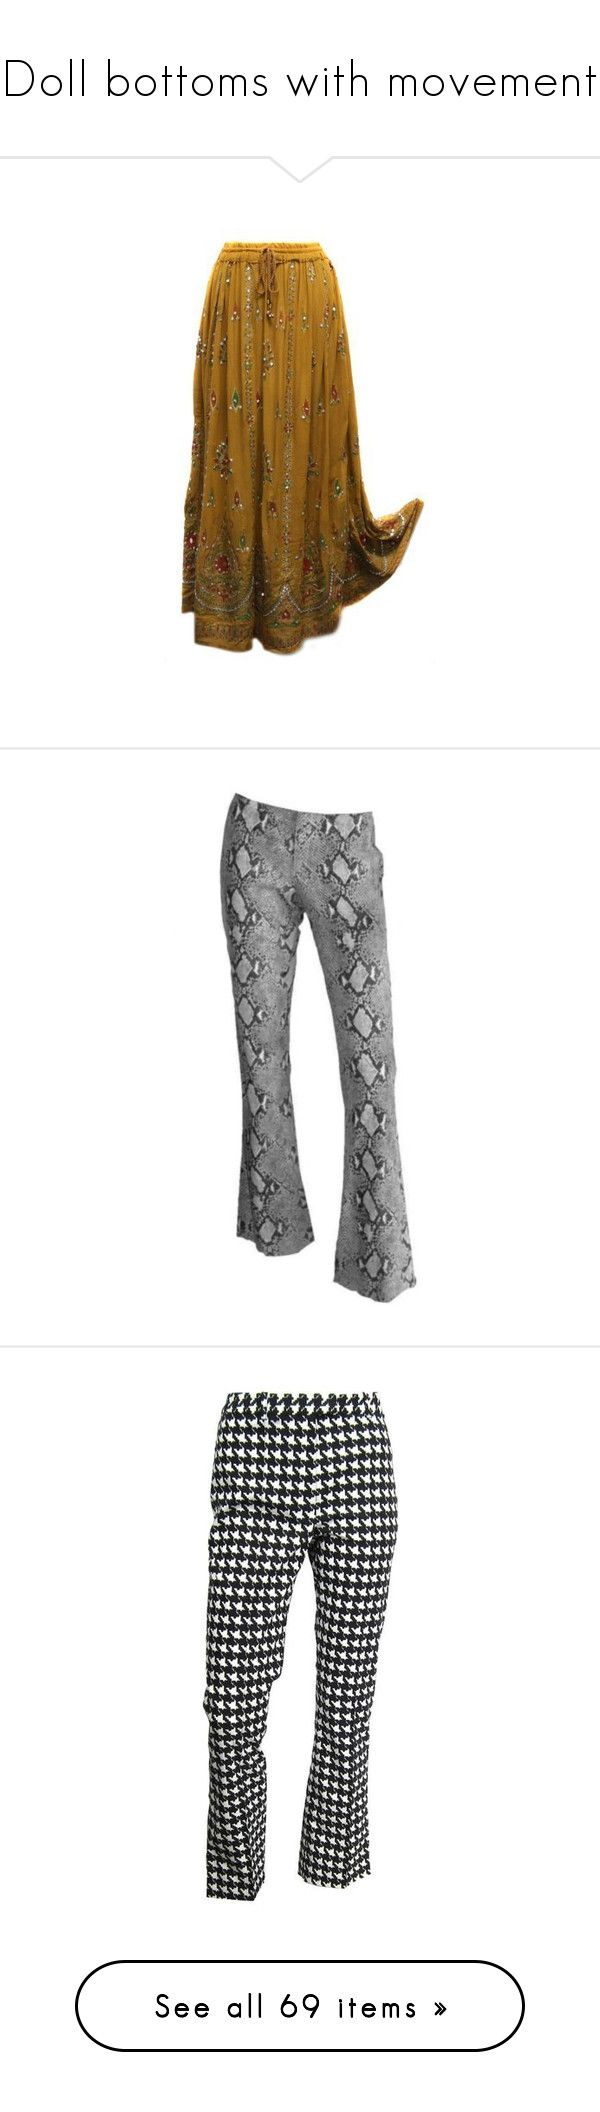 """Doll bottoms with movement"" by silviatanav ❤ liked on Polyvore featuring skirts, bottoms, long boho skirts, long gypsy skirt, long brown skirt, long sequin skirts, silver sequin maxi skirt, pants, pantalones and trousers"